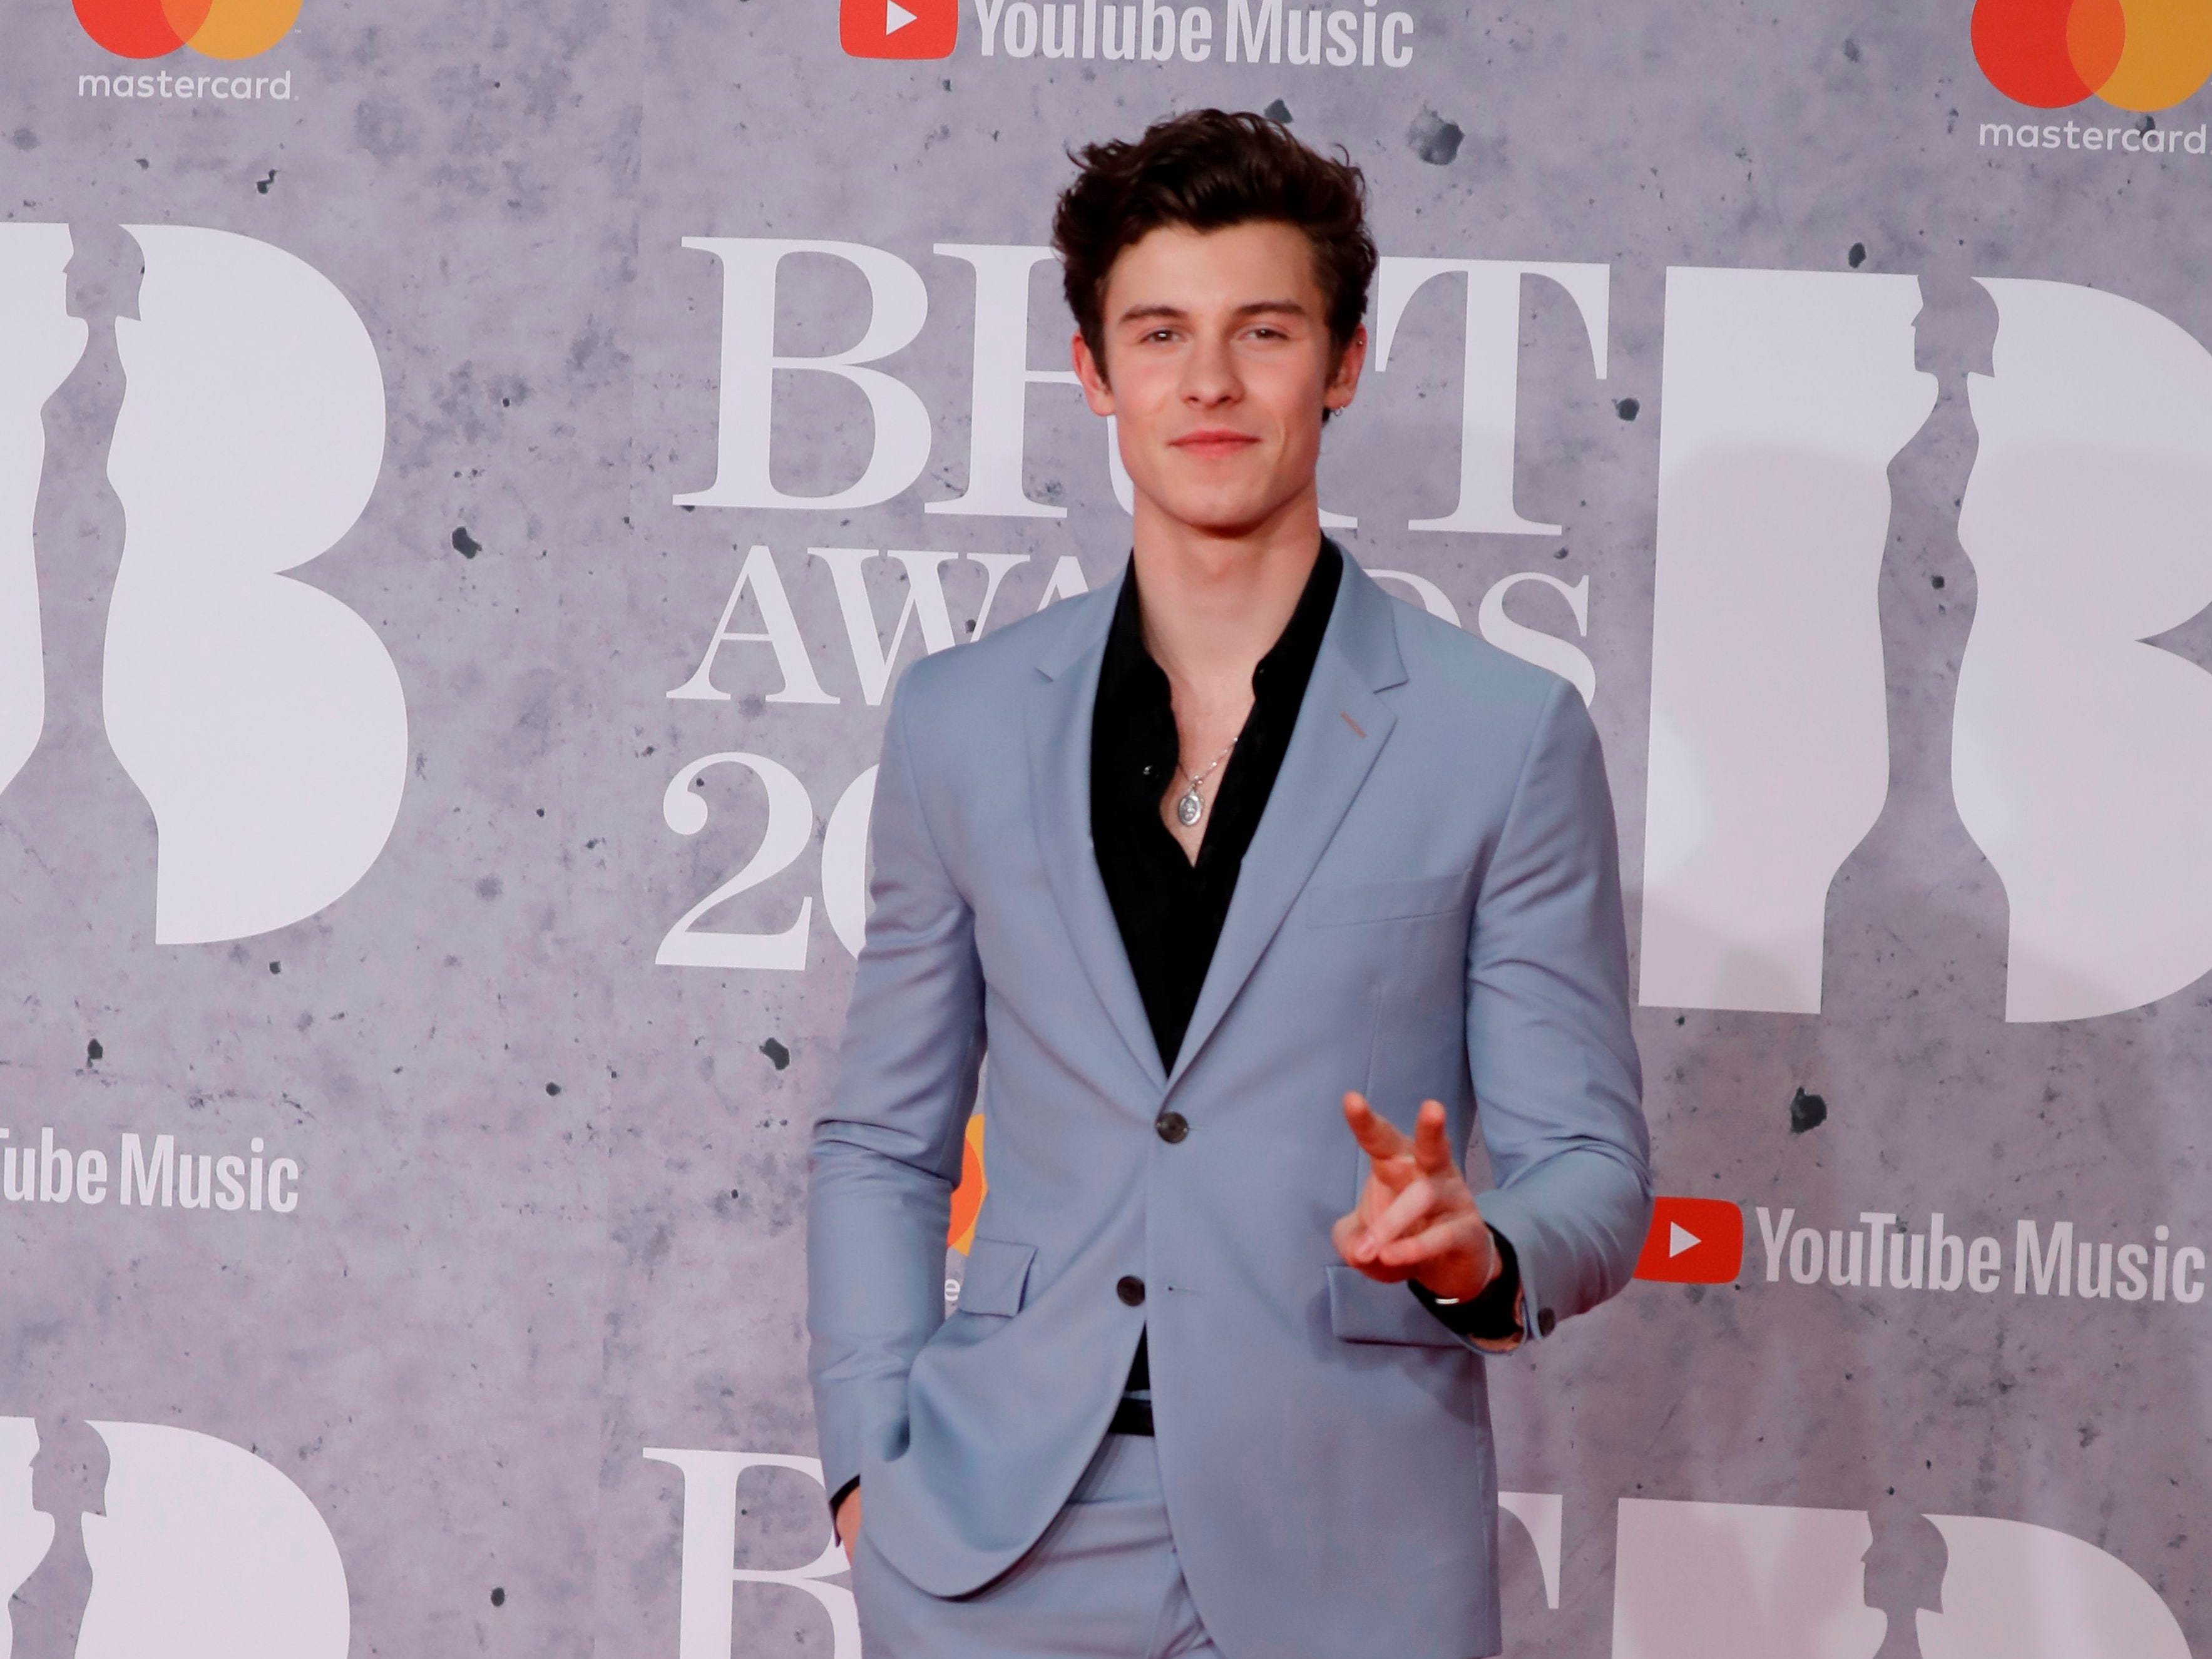 Canadian singer-songwriter Shawn Mendes poses on the red carpet on arrival for the BRIT Awards 2019 in London on February 20, 2019. (Photo by Tolga AKMEN / AFP) / RESTRICTED TO EDITORIAL USE  NO POSTERS  NO MERCHANDISE NO USE IN PUBLICATIONS DEVOTED TO ARTISTSTOLGA AKMEN/AFP/Getty Images ORIG FILE ID: AFP_1DO1PX